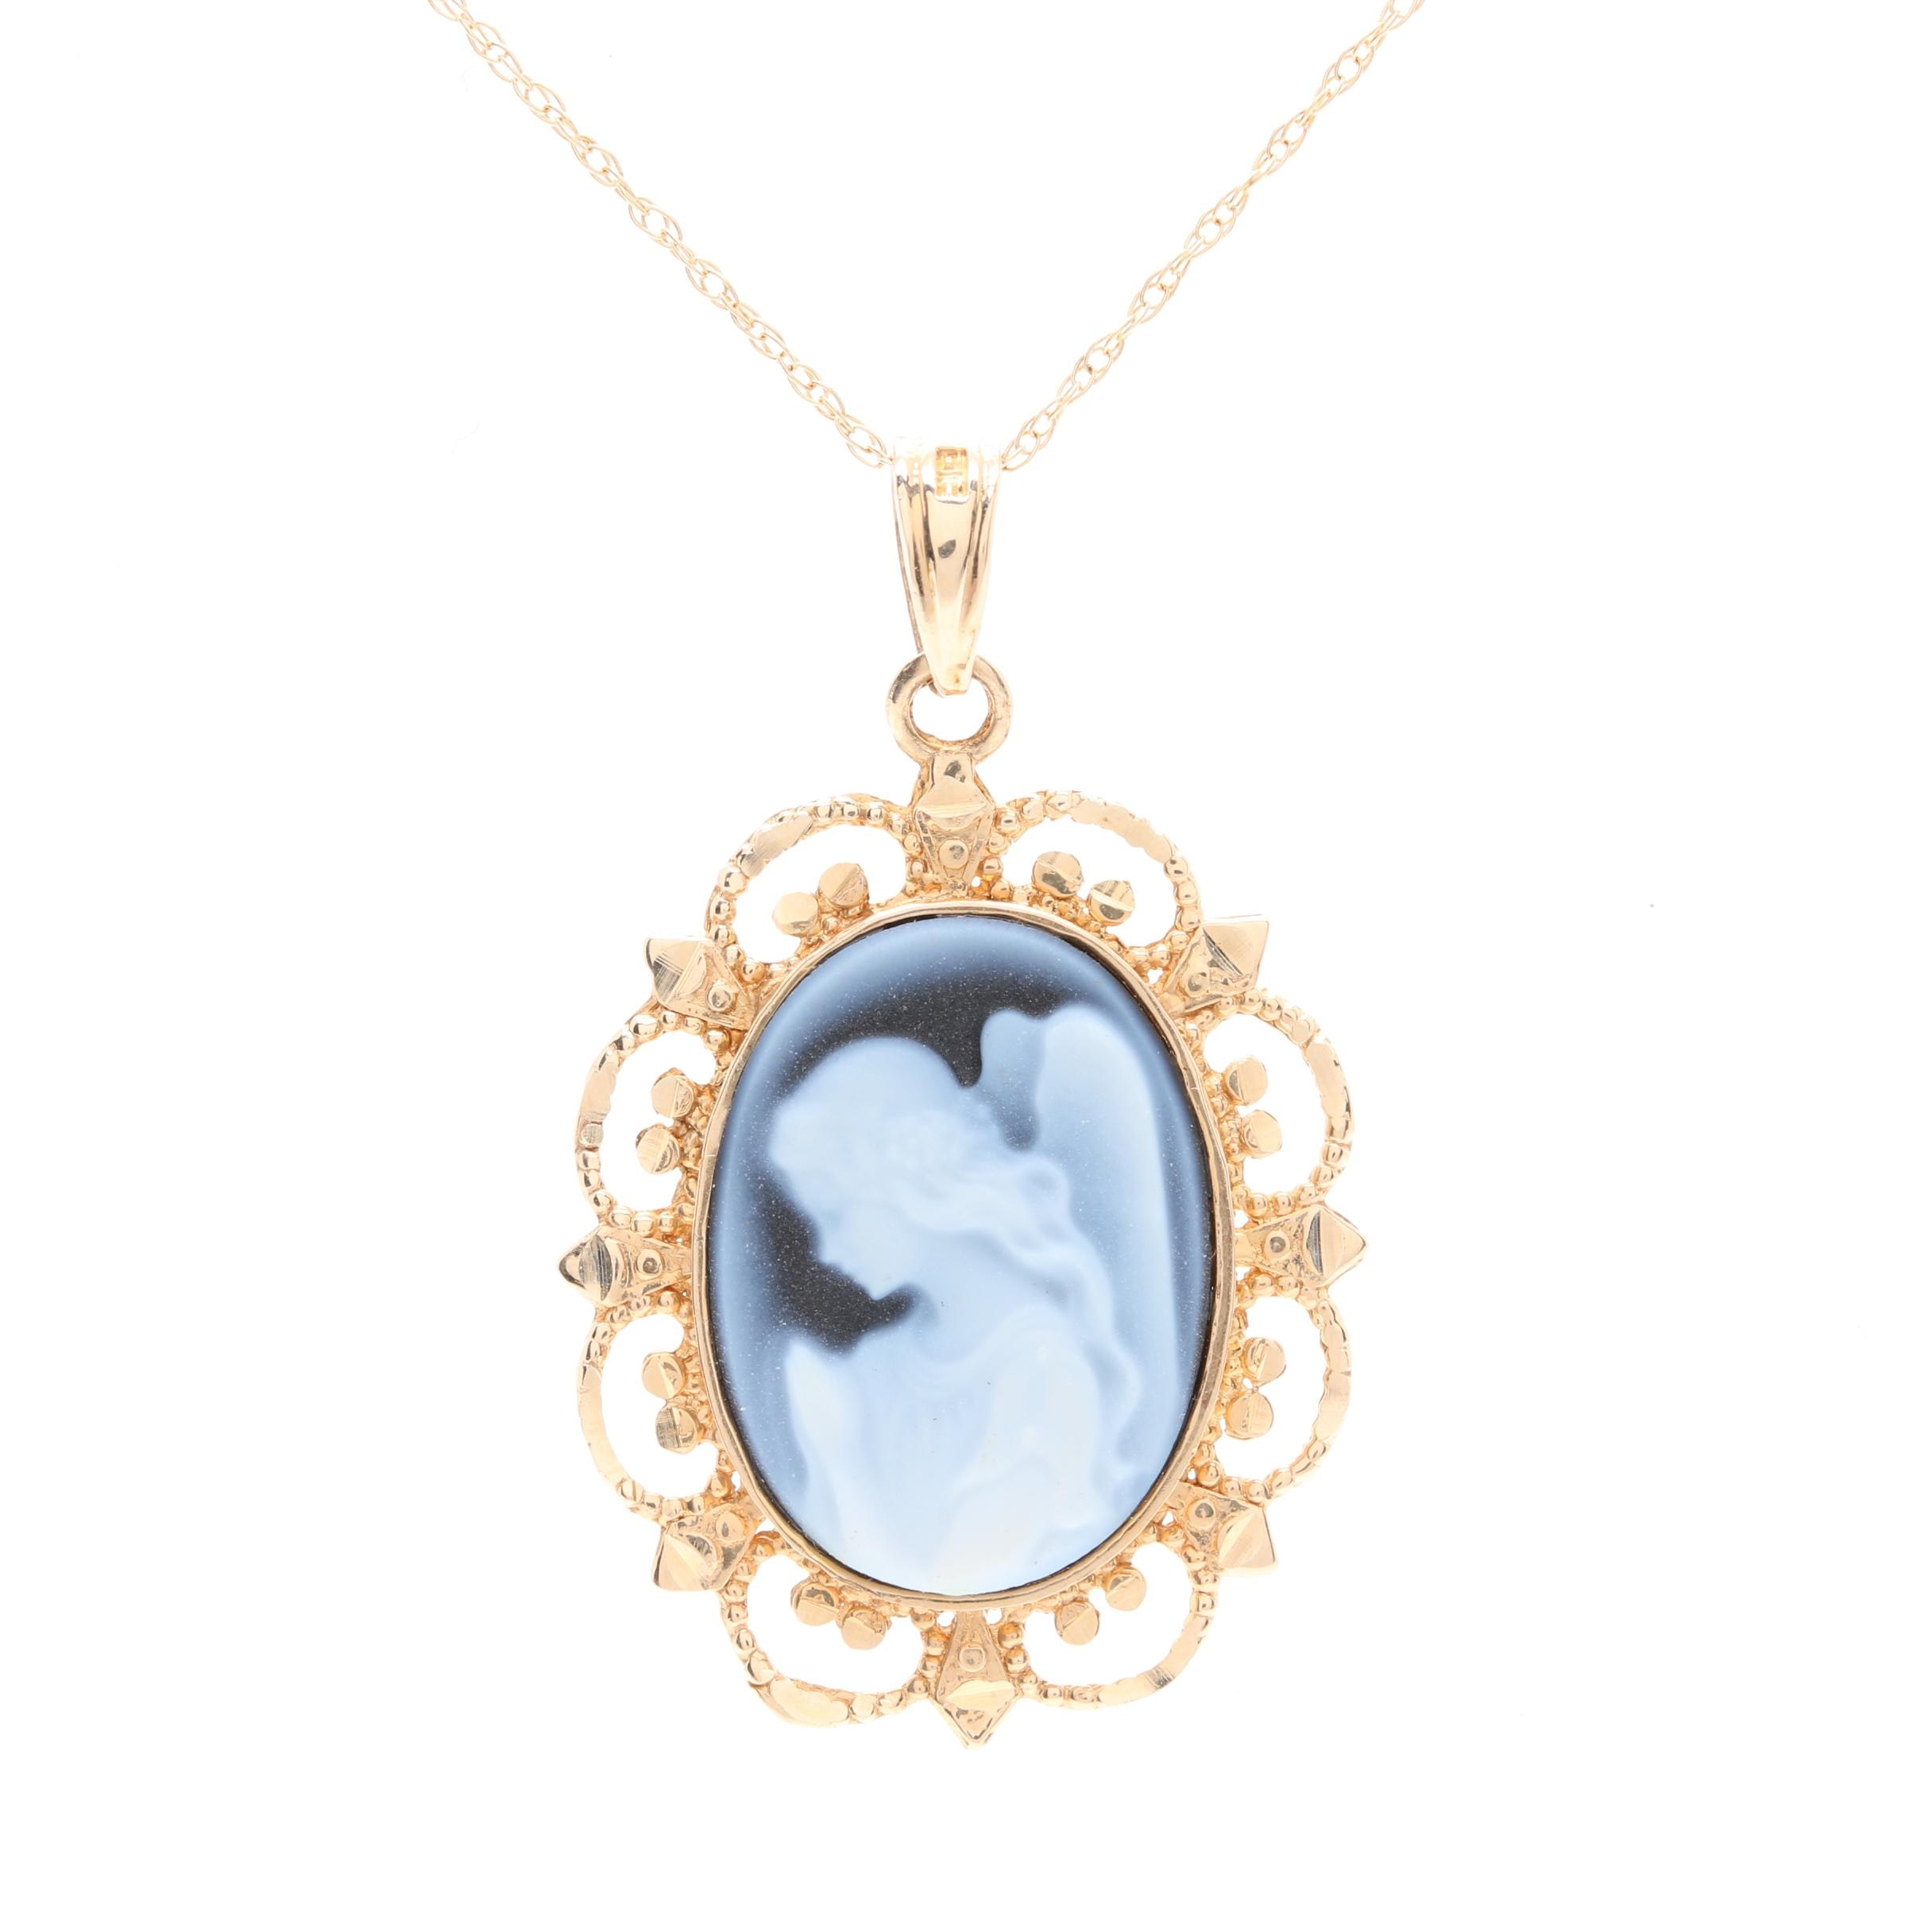 14K Yellow Gold Carved Onyx Cameo Pendant Necklace